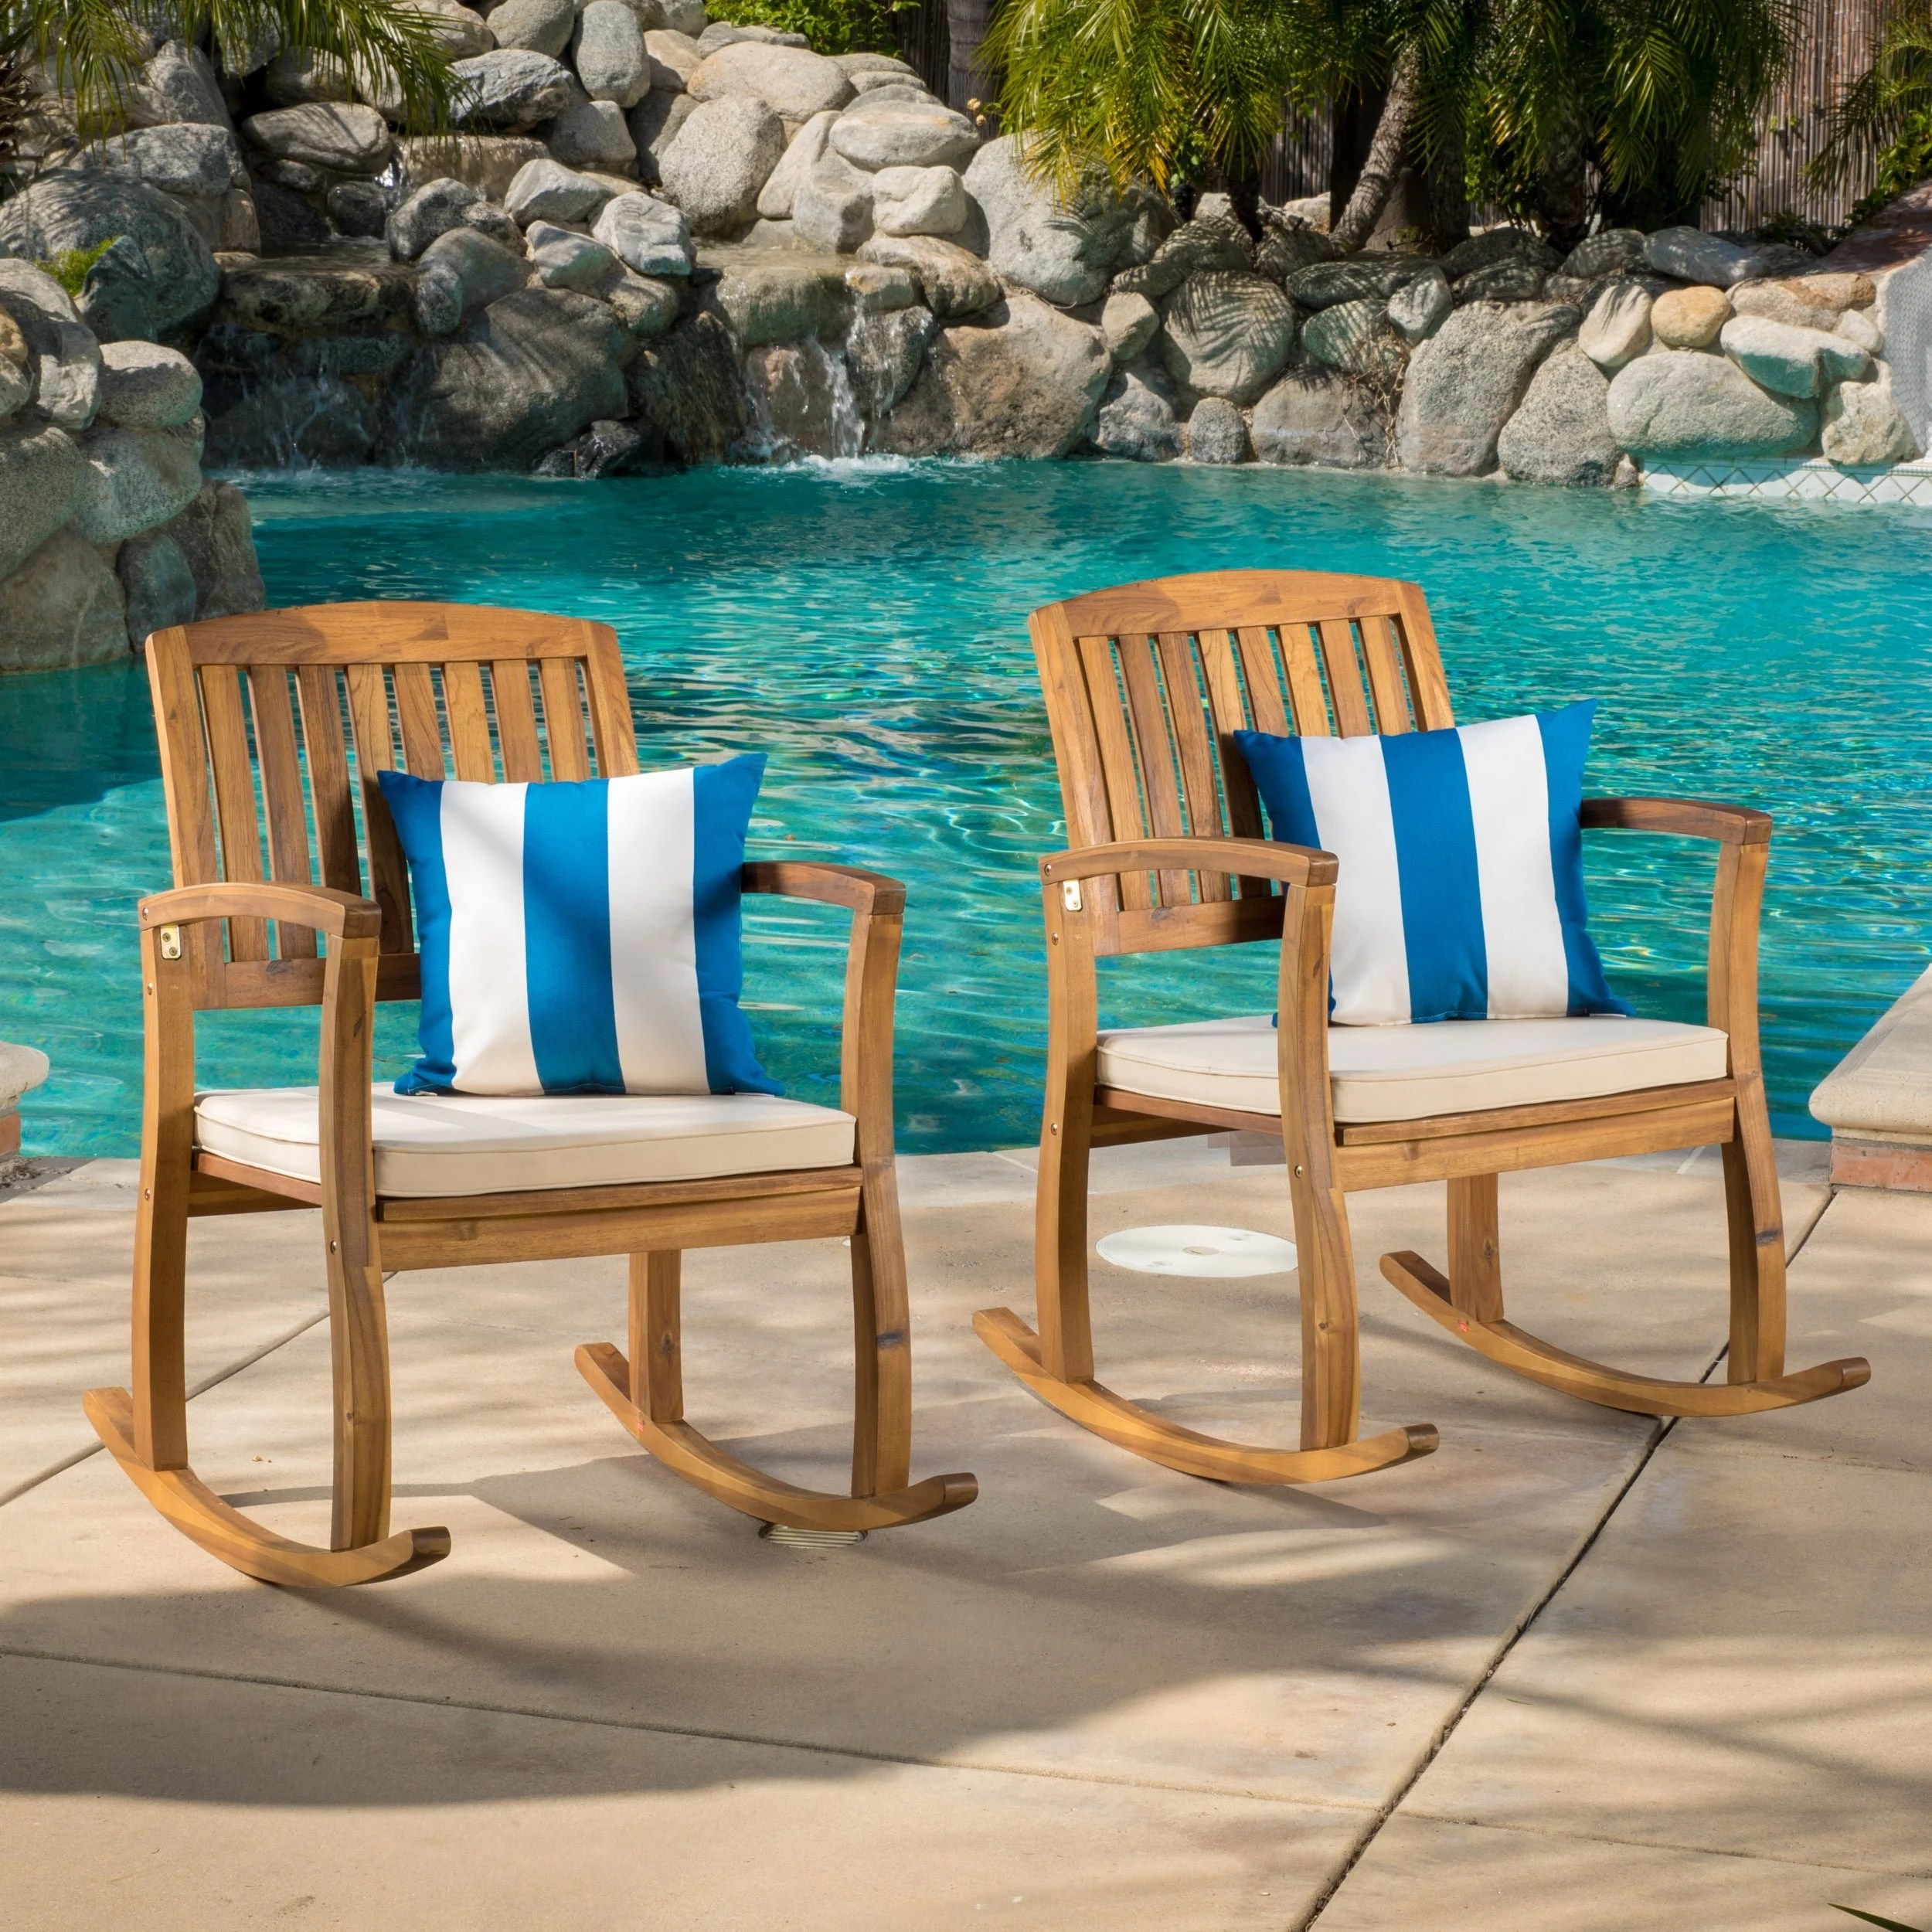 Overstock Rocking Chairs Lucca Outdoor Acacia Wood Rocking Chair With Cushion Set